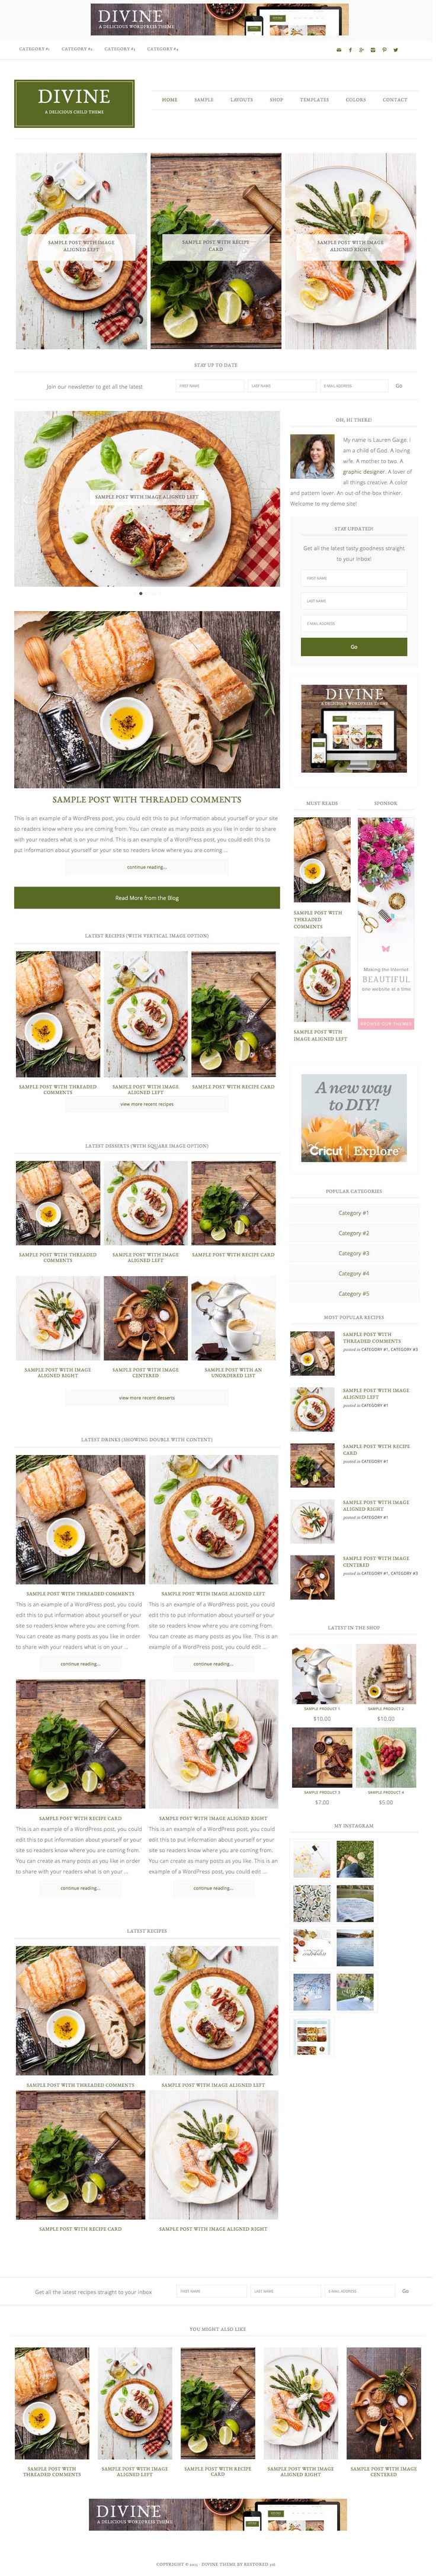 Divine // An Ecommerce Genesis Child Theme - Versatility and Personalization is what we are about! The Divine theme is all that and more! This theme can be used for any genre of blog or site, can be customized to fit your images and style, and completely make it your own!